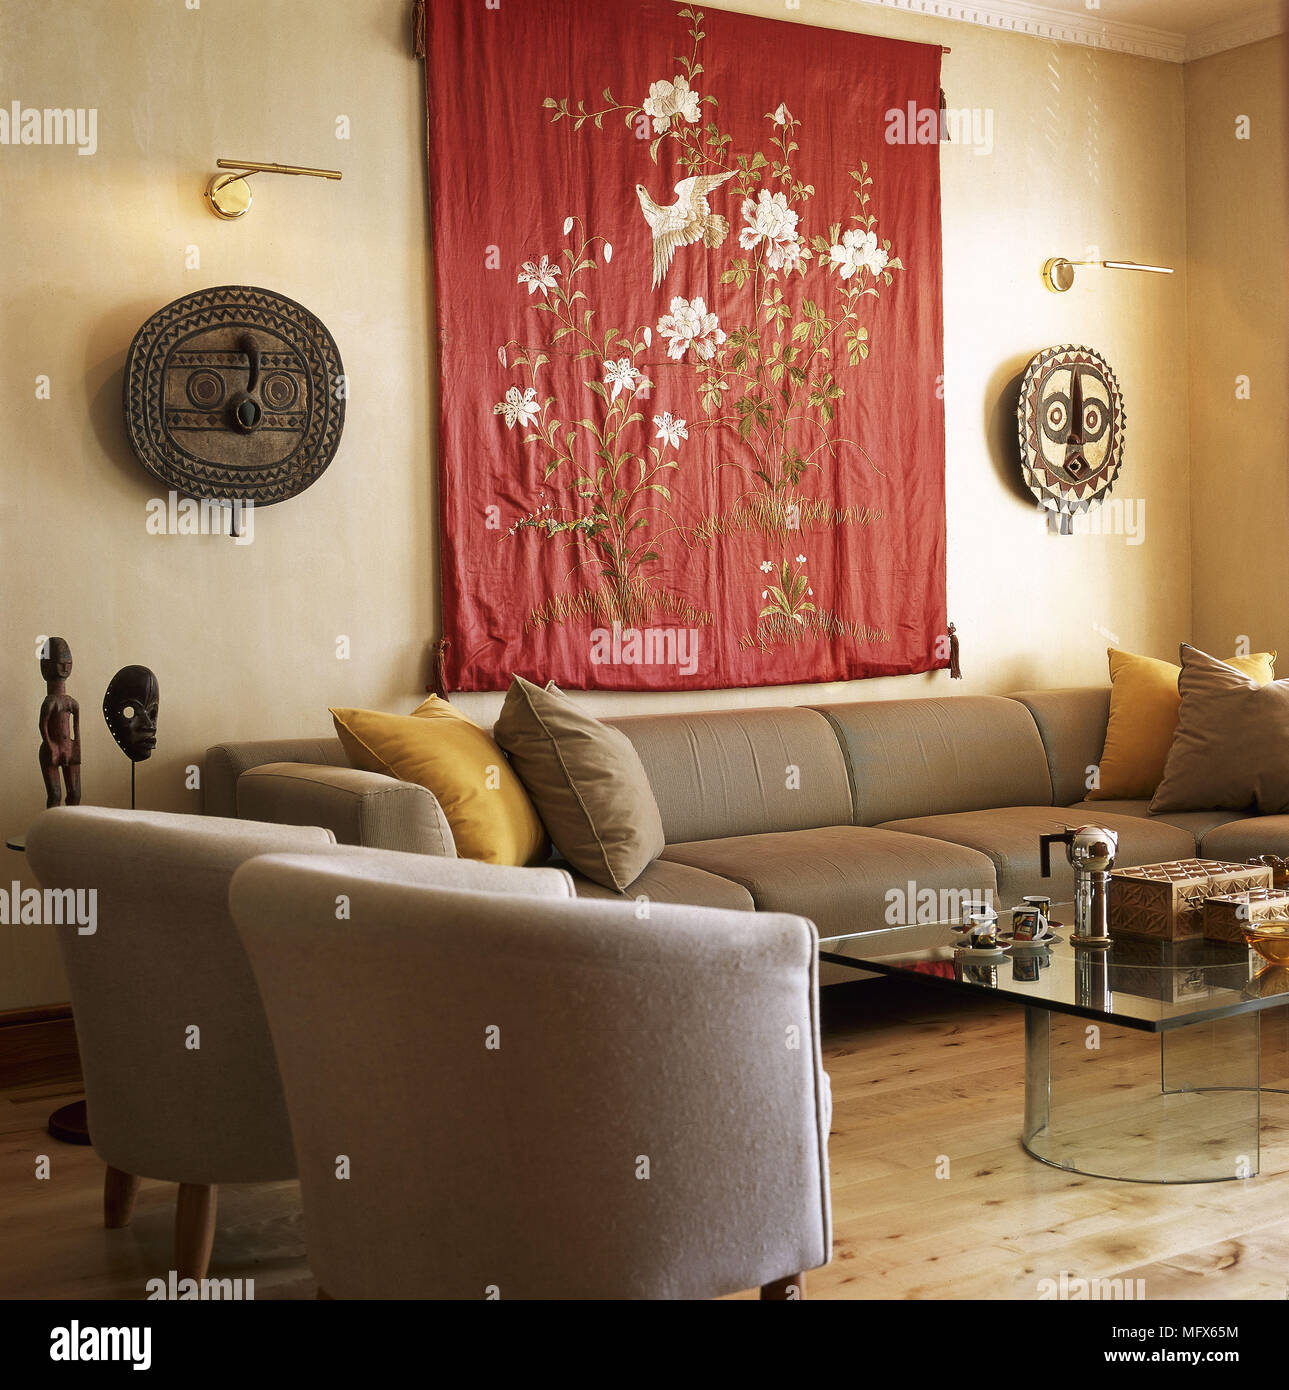 Neutral Sitting Room With Tub Armchairs Sofa Embroidered Fabric Wall Hanging And Exotic Art Pieces Stock Photo Alamy